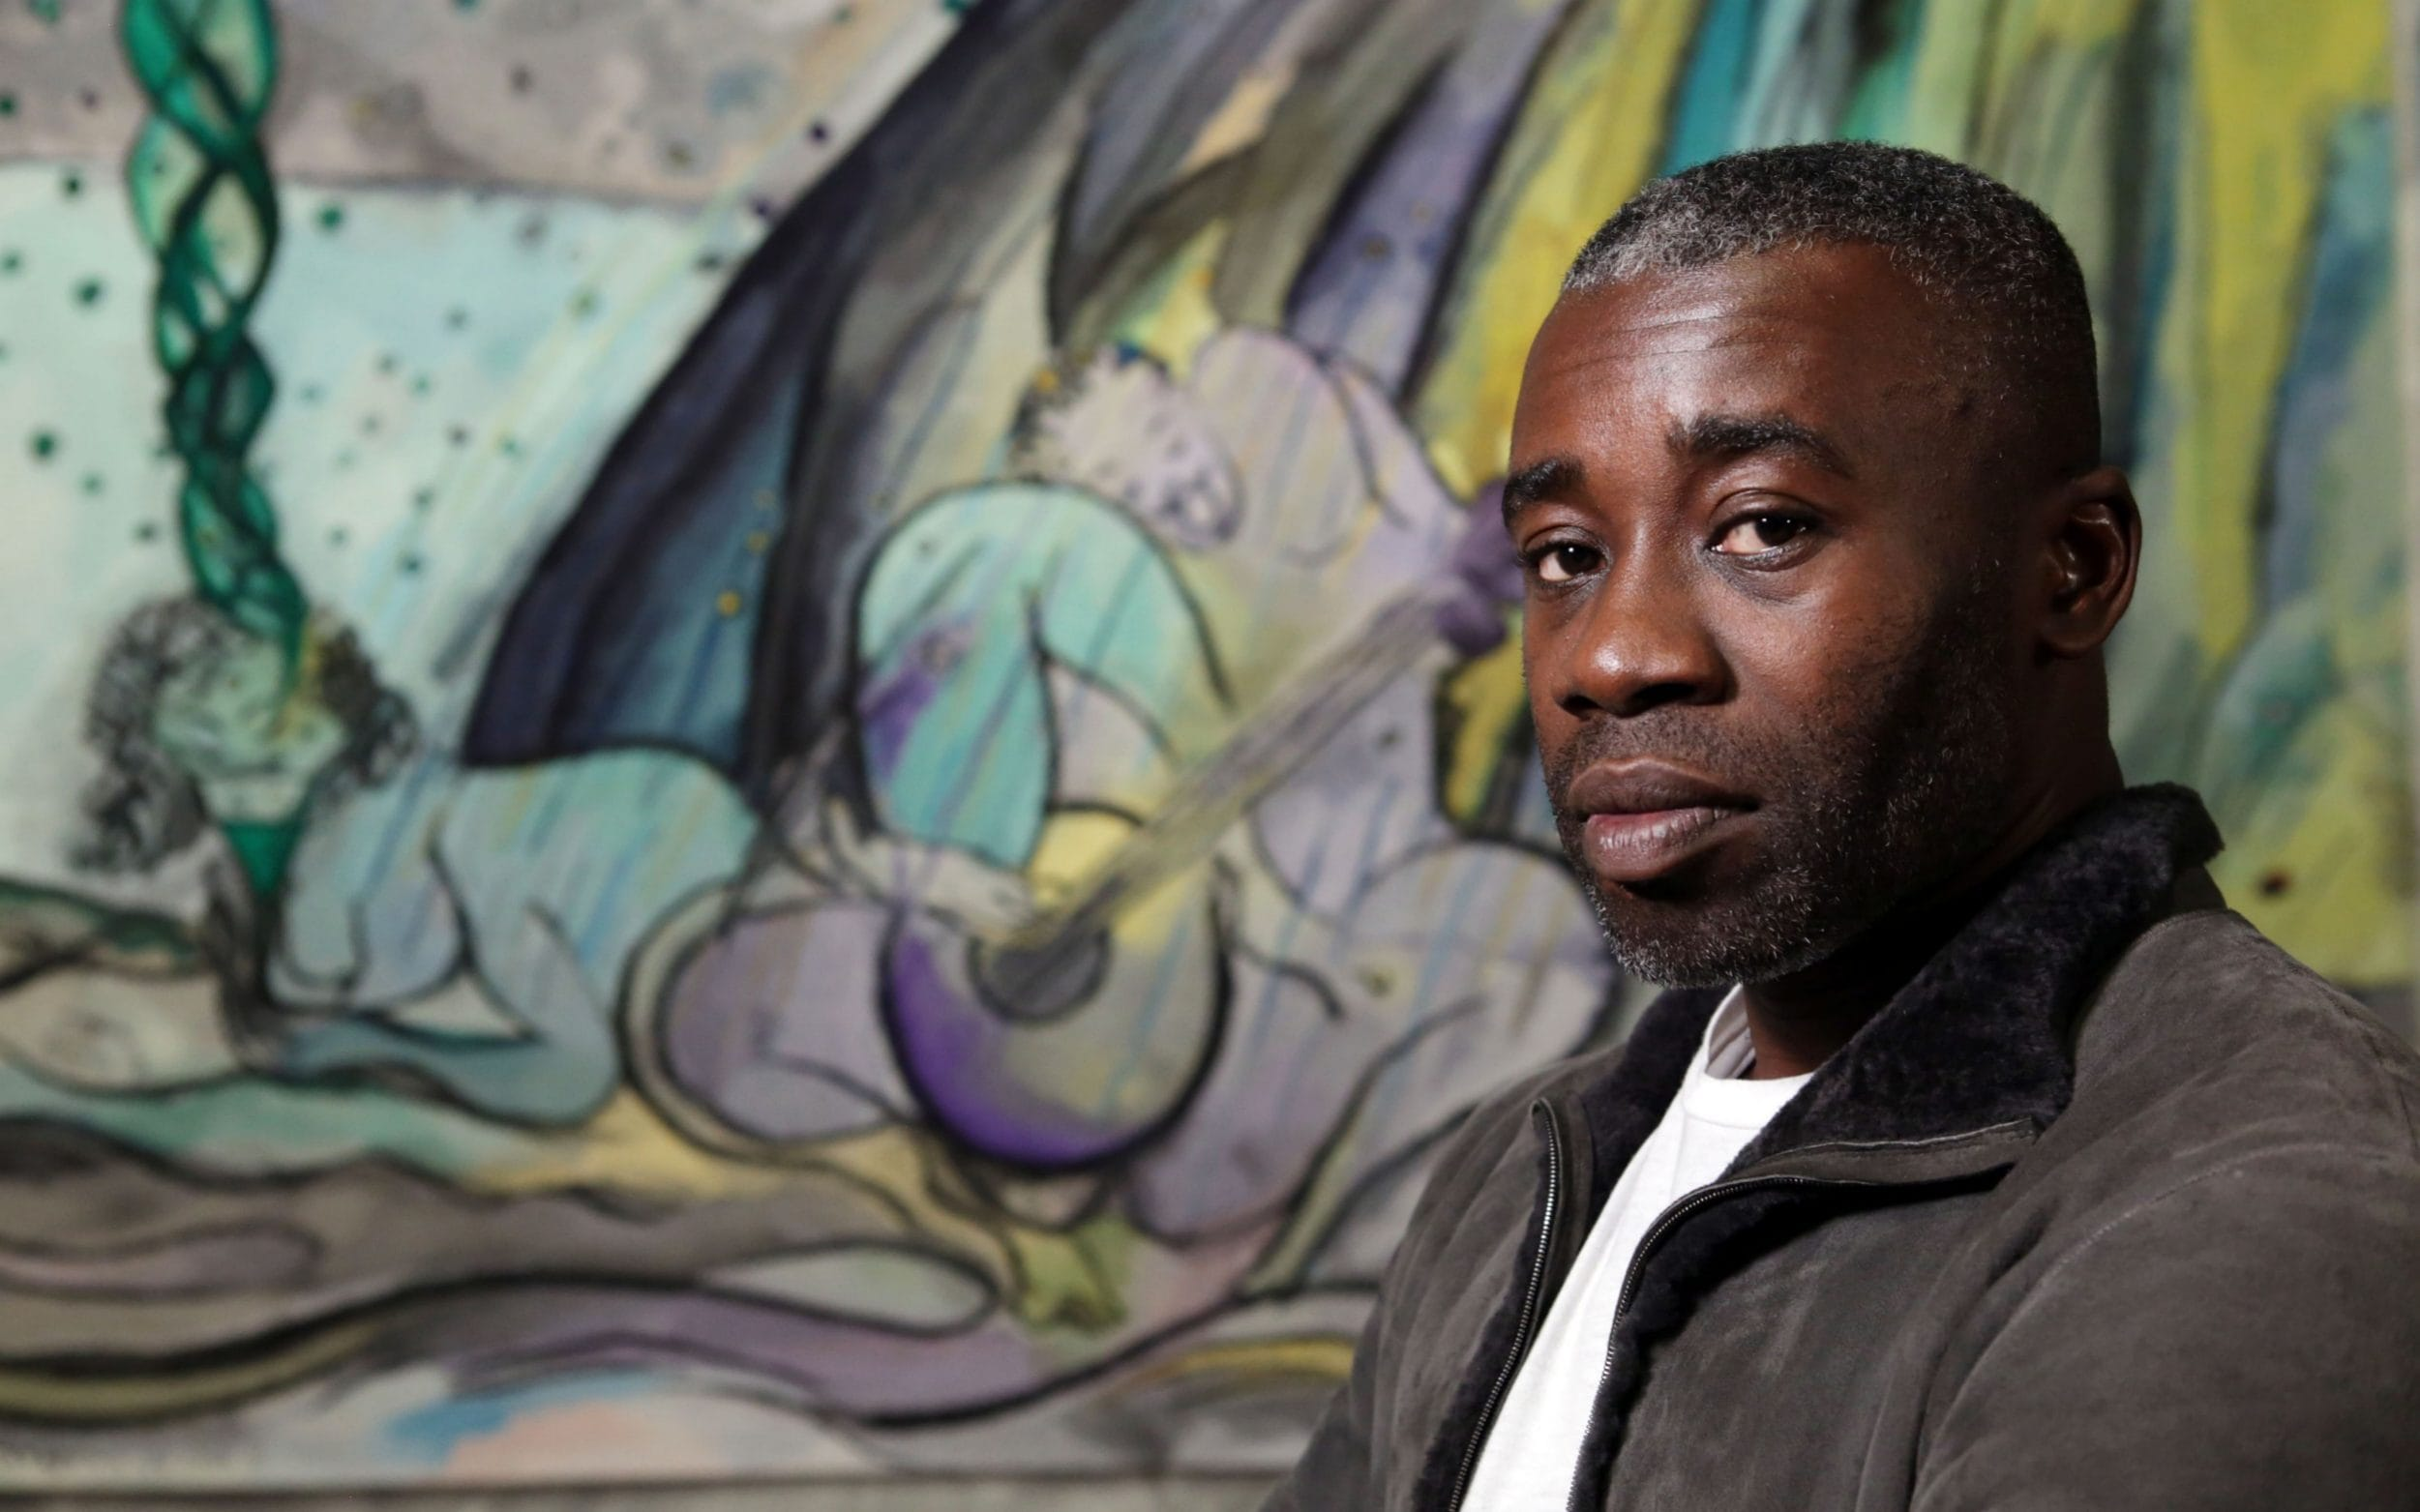 ART MARKET PILL. L'ascesa verticale di Chris Ofili, dal Turner Prize ai top lot milionari